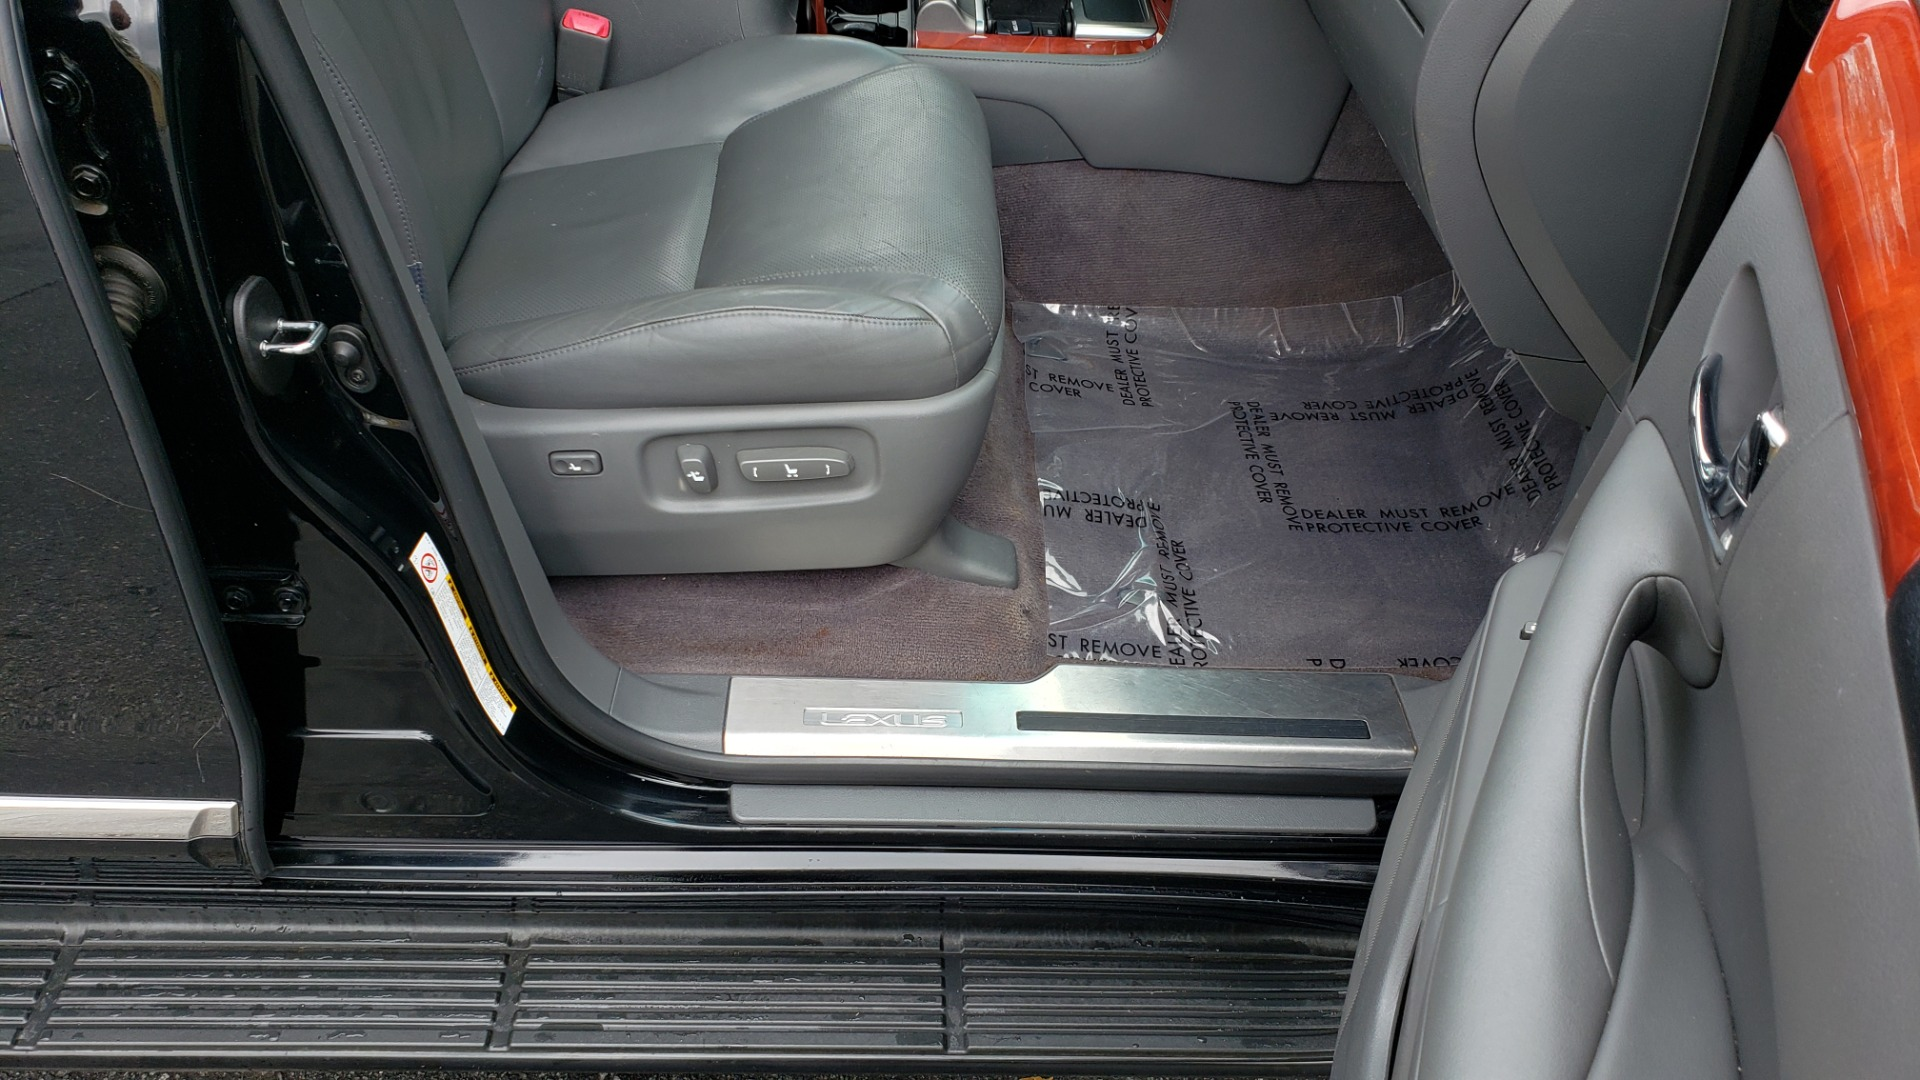 Used 2008 Lexus LX 570 4WD / TECH PKG / NAV / SUNROOF / MARK LEVINSON / PARK ASST for sale $22,995 at Formula Imports in Charlotte NC 28227 70